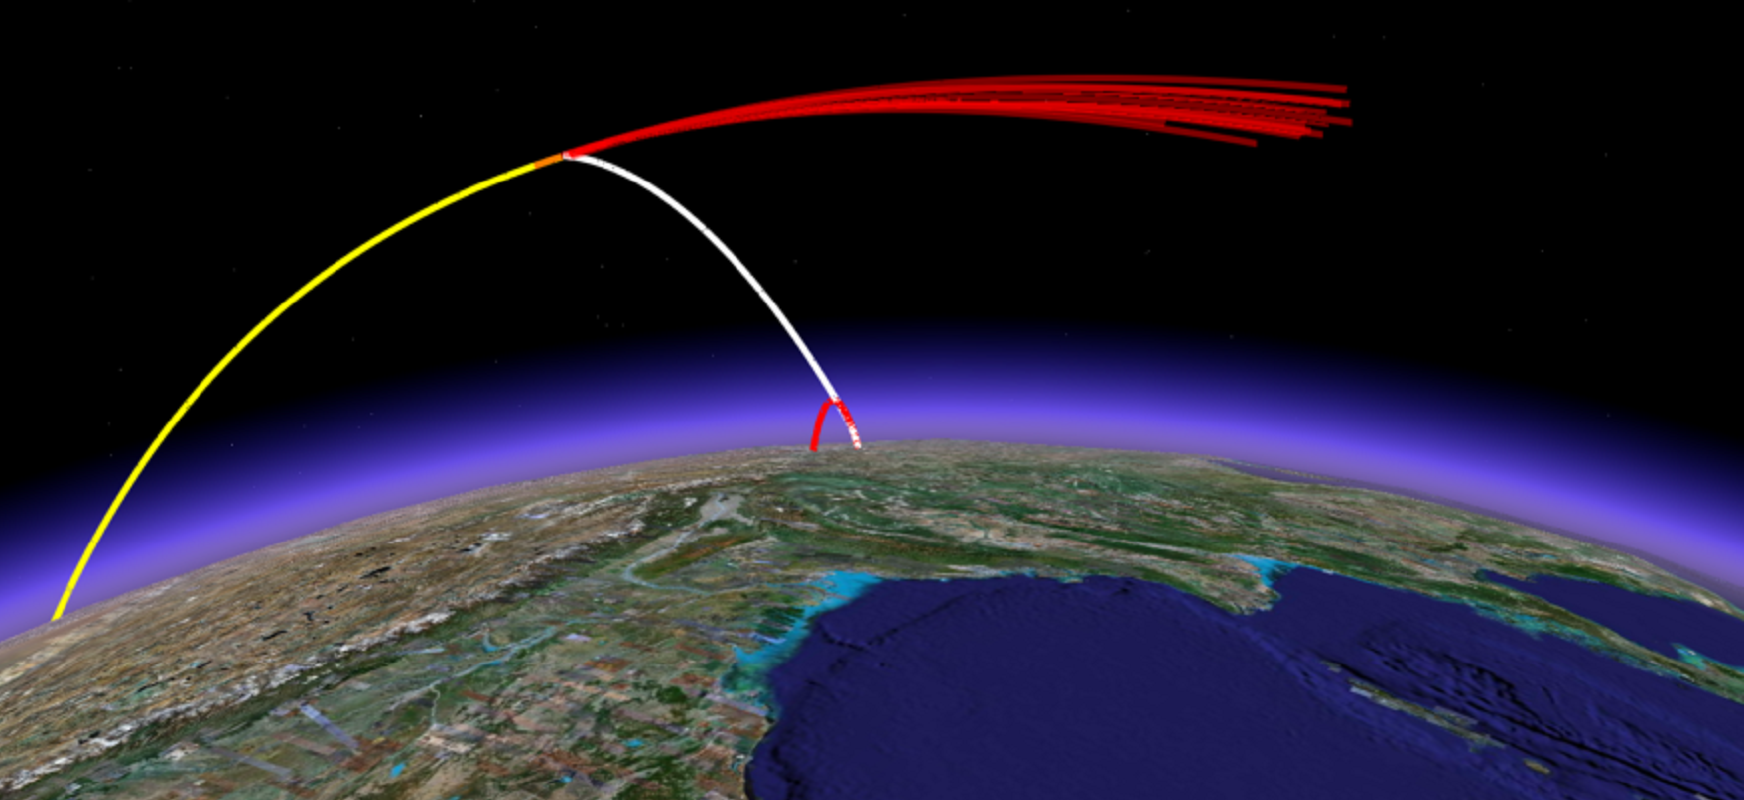 Russia is testing a satellite shooting system